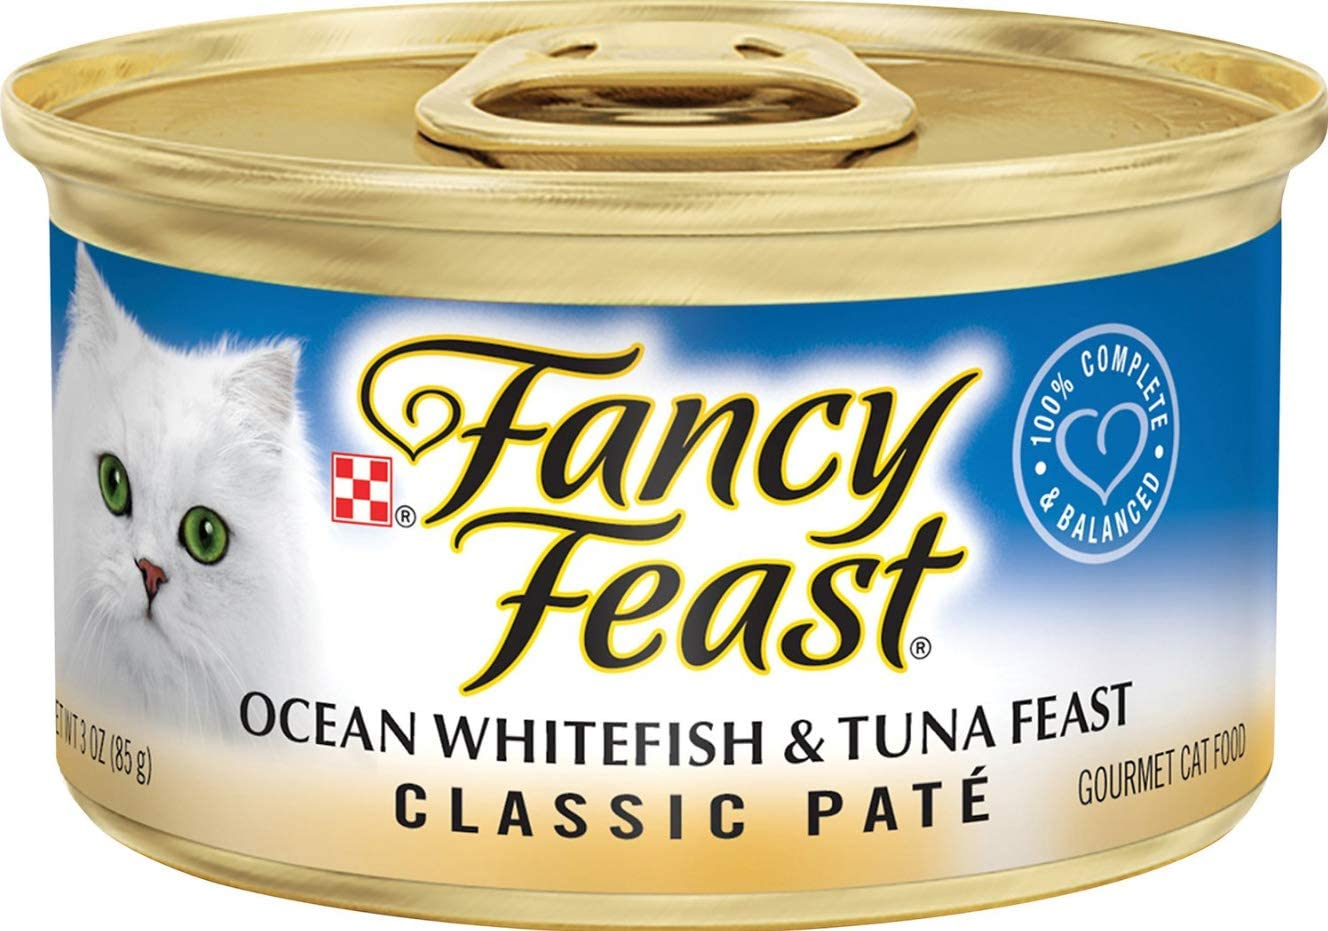 Purina 30 Cans of Fancy Feast Classic Ocean Whitefish Tuna Feast Canned Cat Food, 3-oz ea